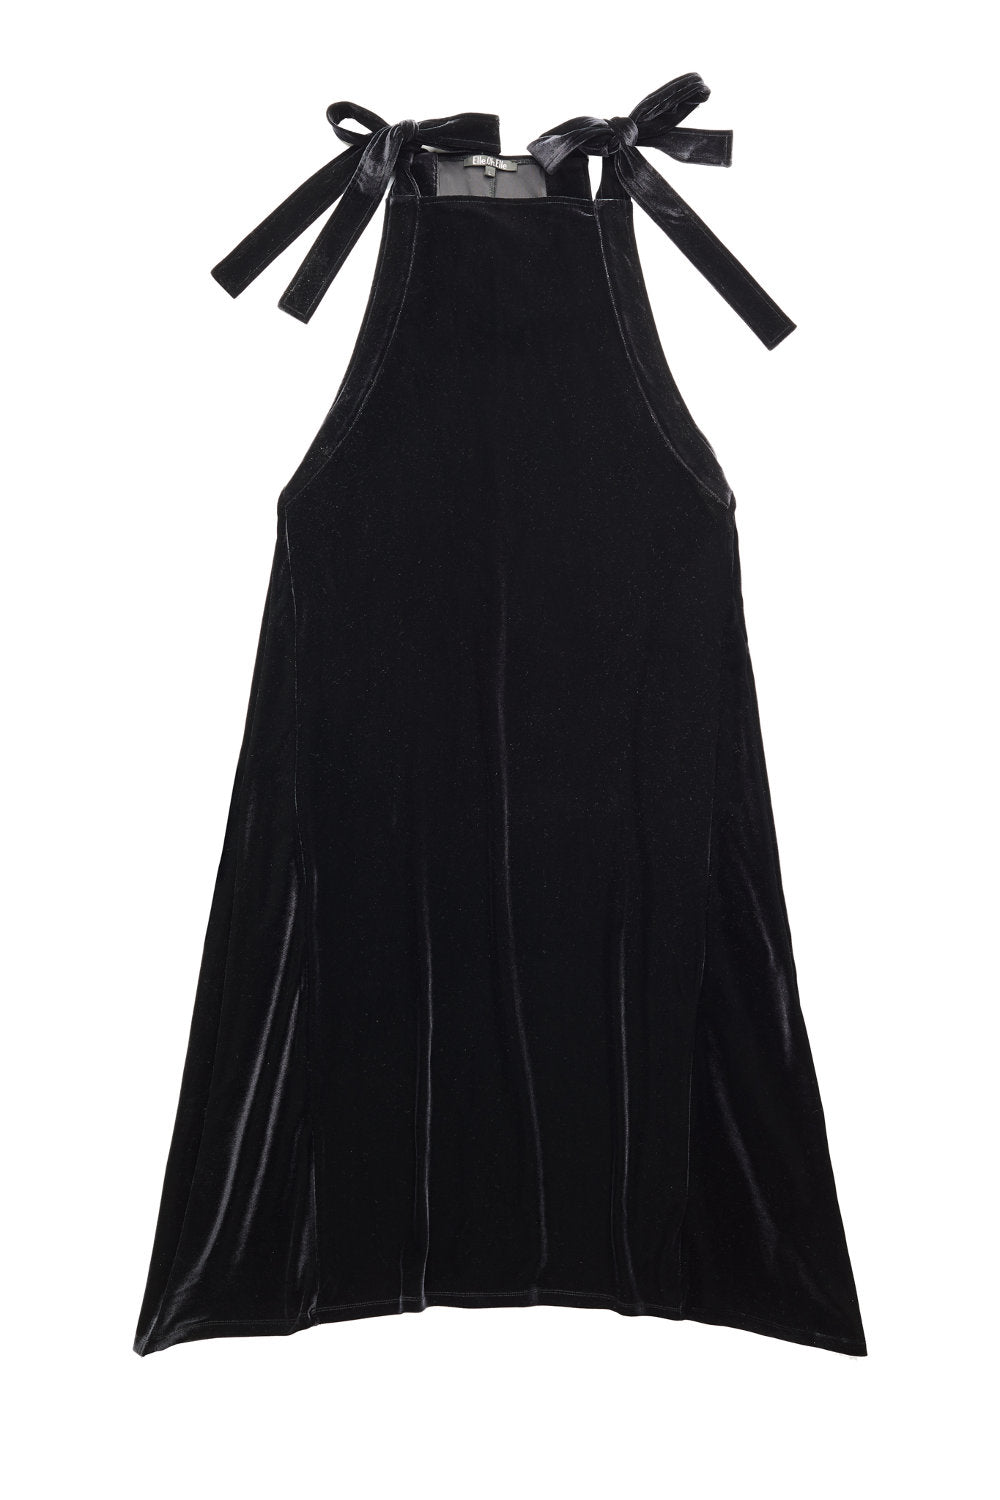 Elle.Oh.Elle Black Velour Maxi Dress